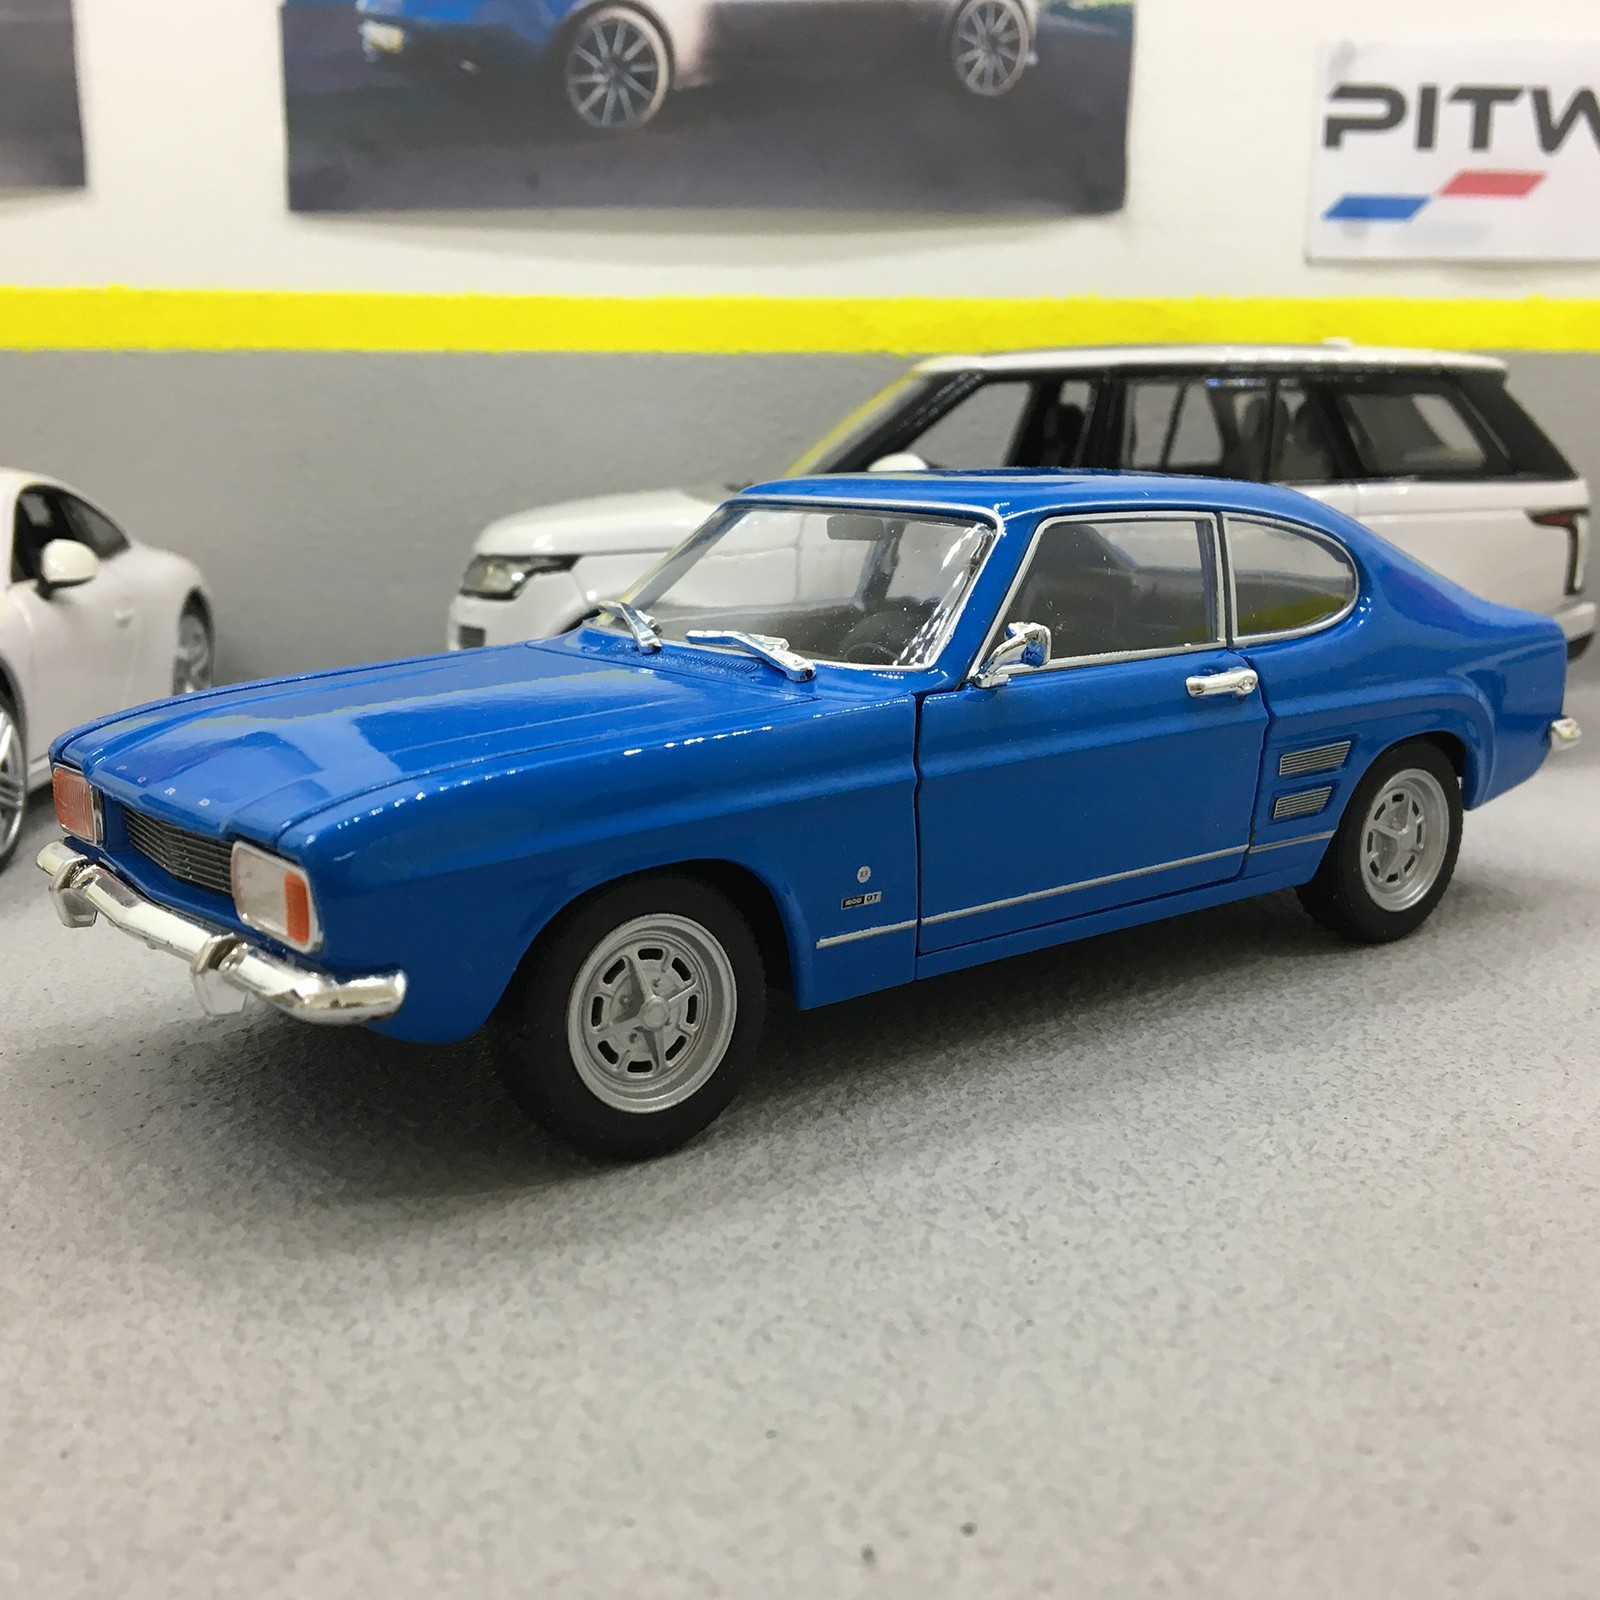 Ford capri 1969 pitwalk special offer exclusive to ebay customers